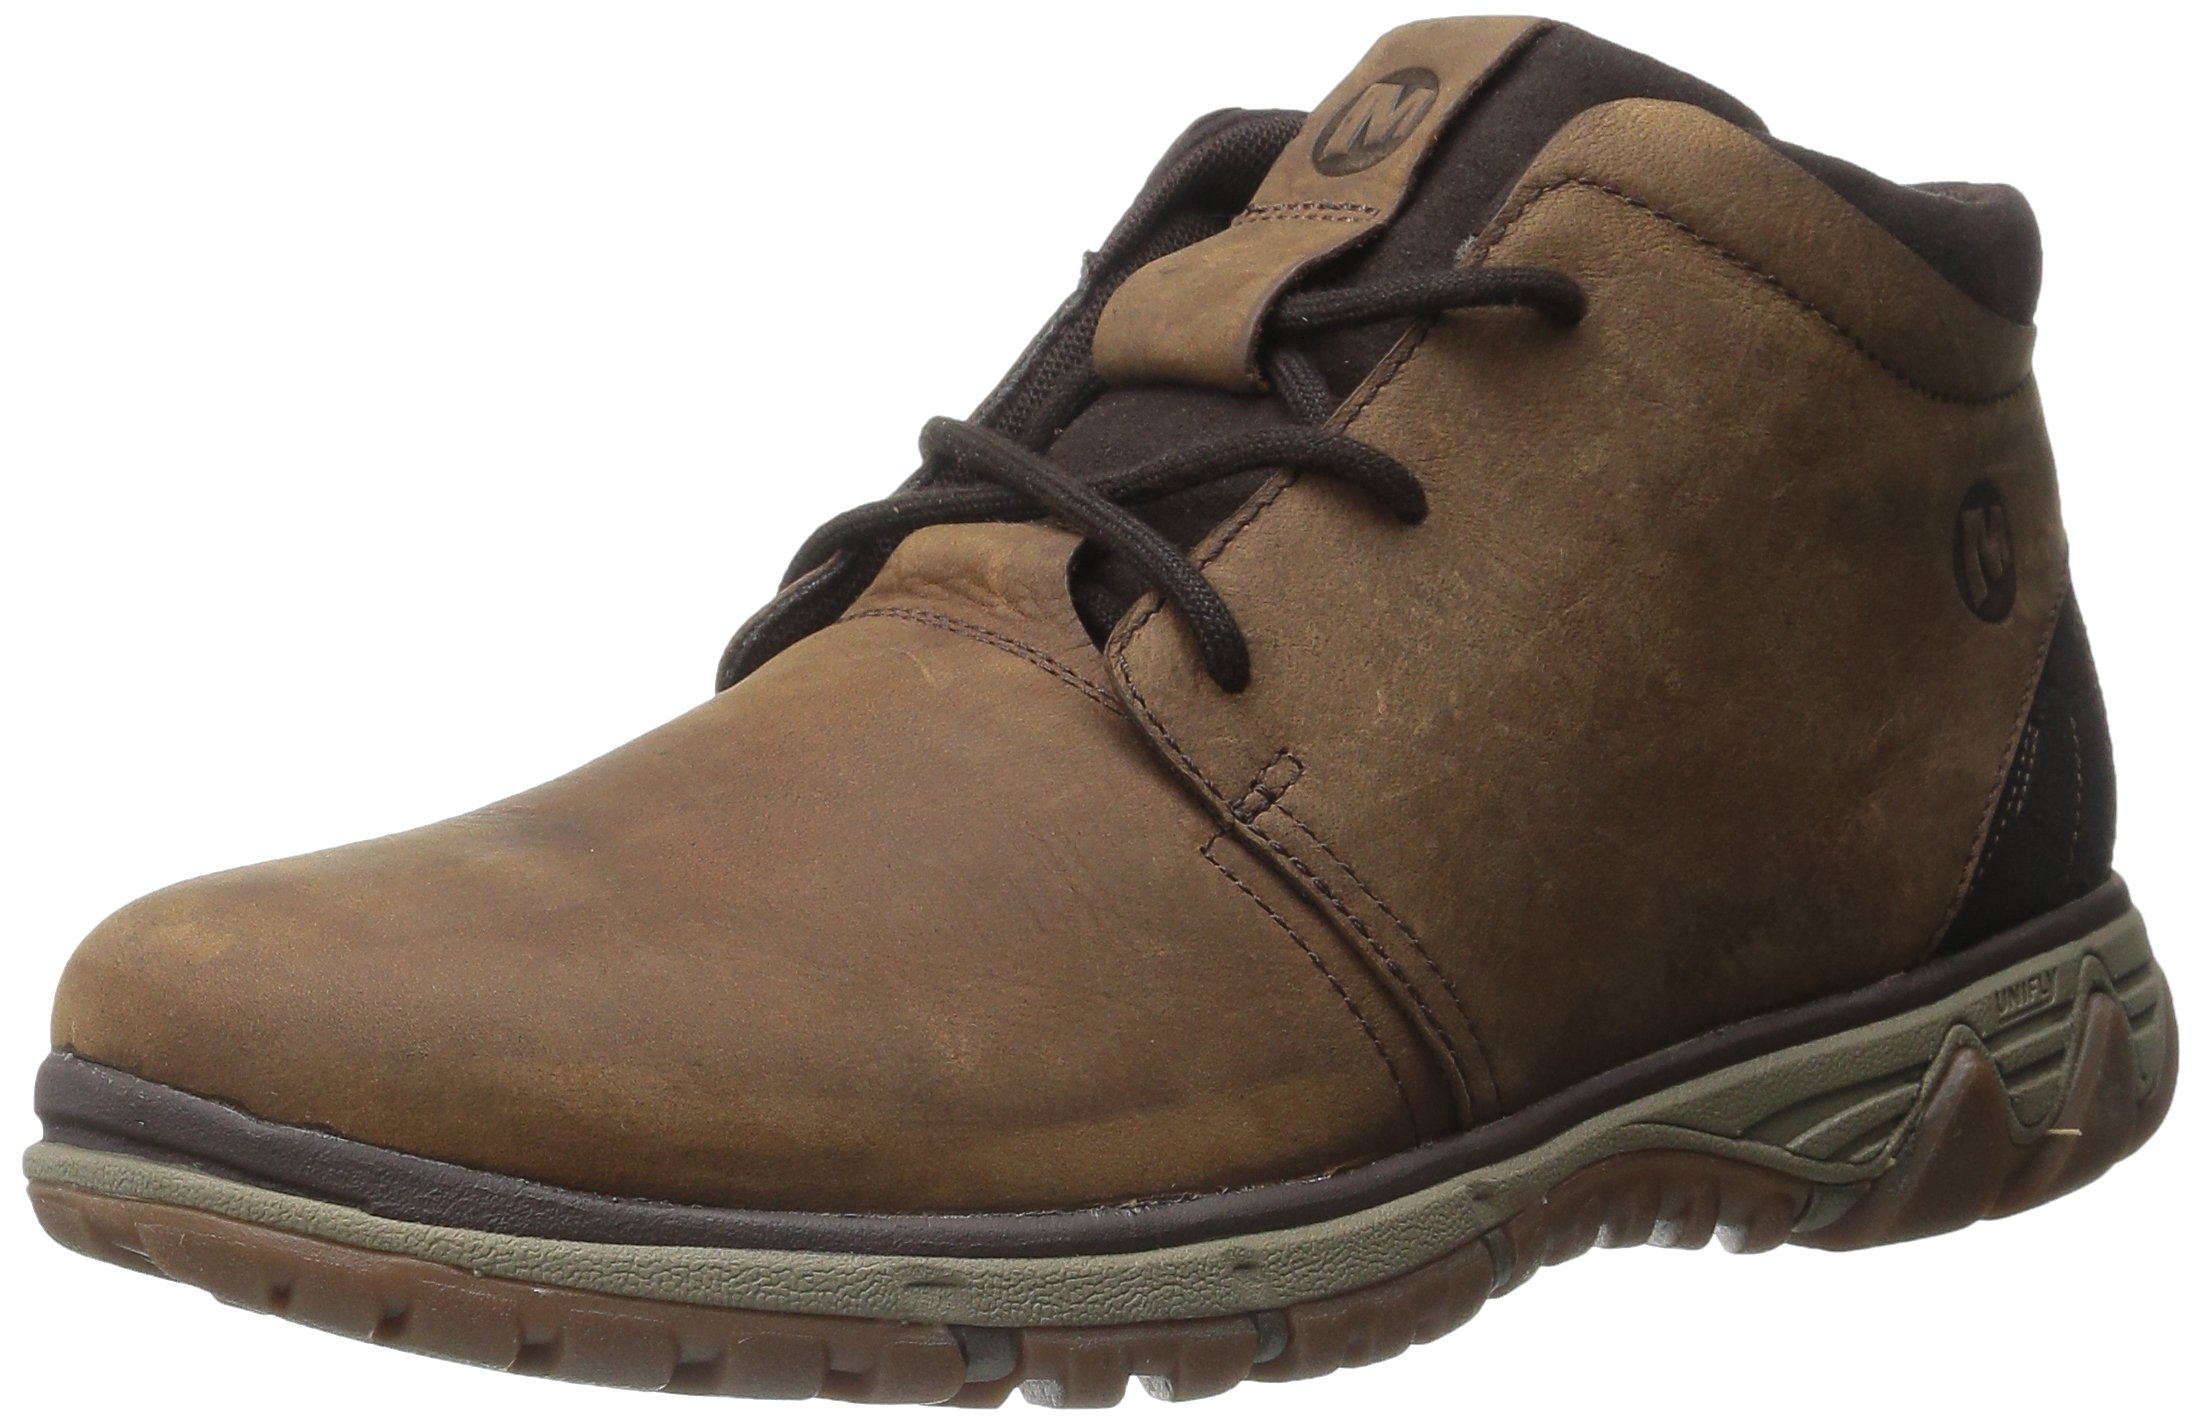 Merrell Men's All Out Blazer Chukka Lace-Up Shoe, Merrell Tan, 9.5 M US